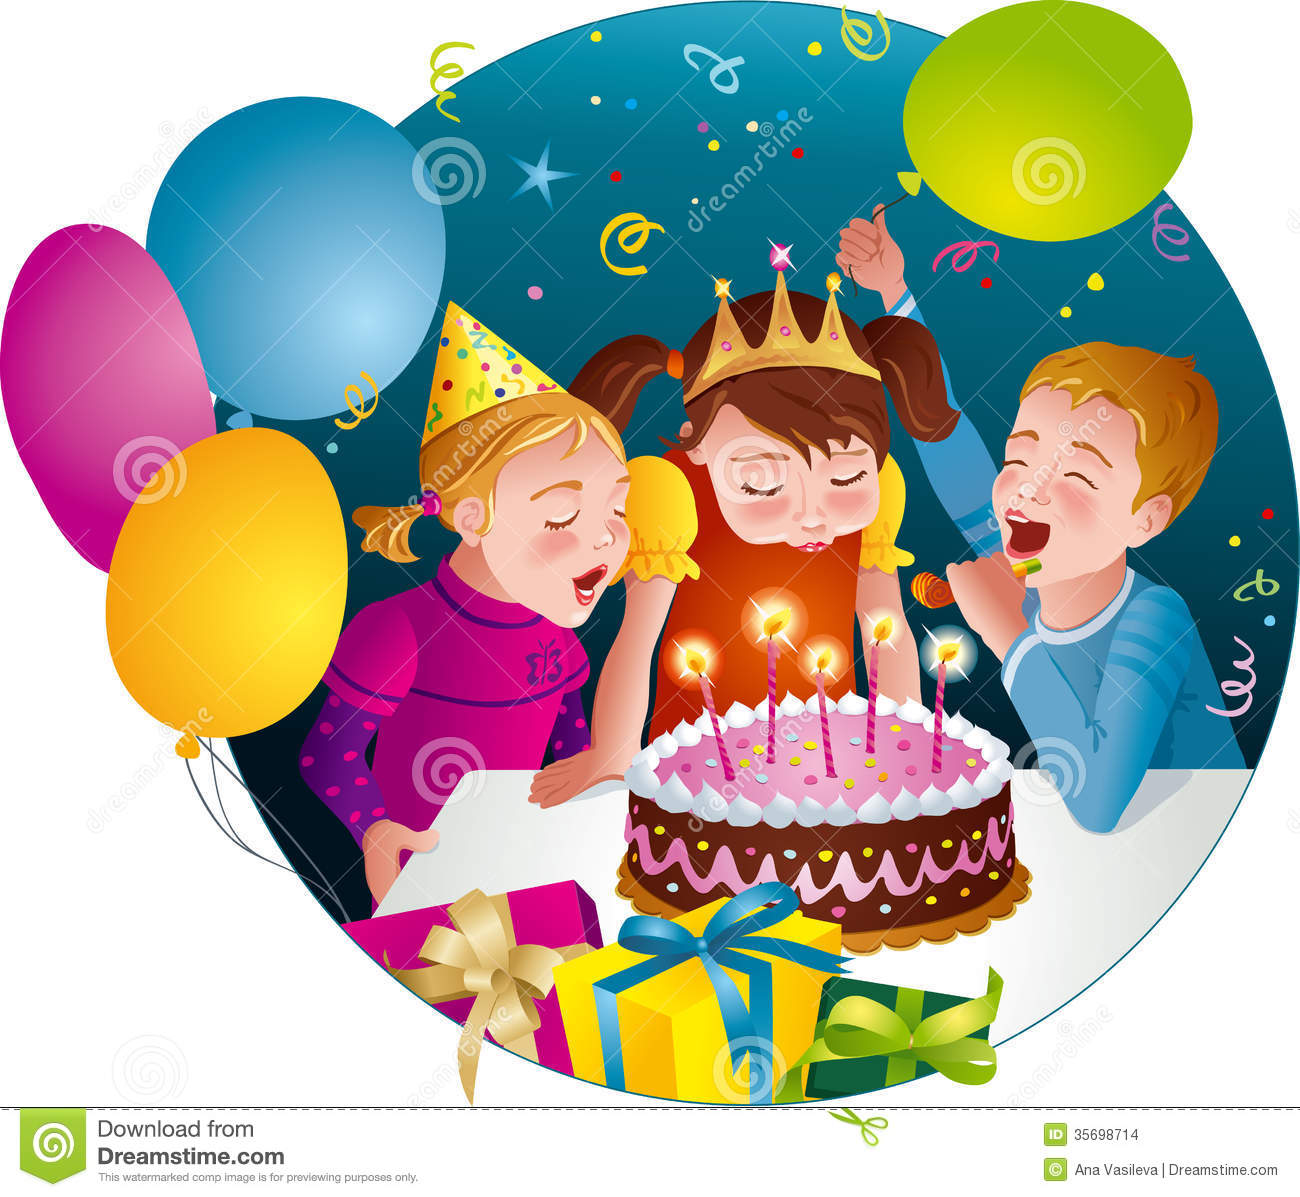 Happy Birthday Party Clipart - ClipartFe-Happy birthday party clipart - ClipartFest-14